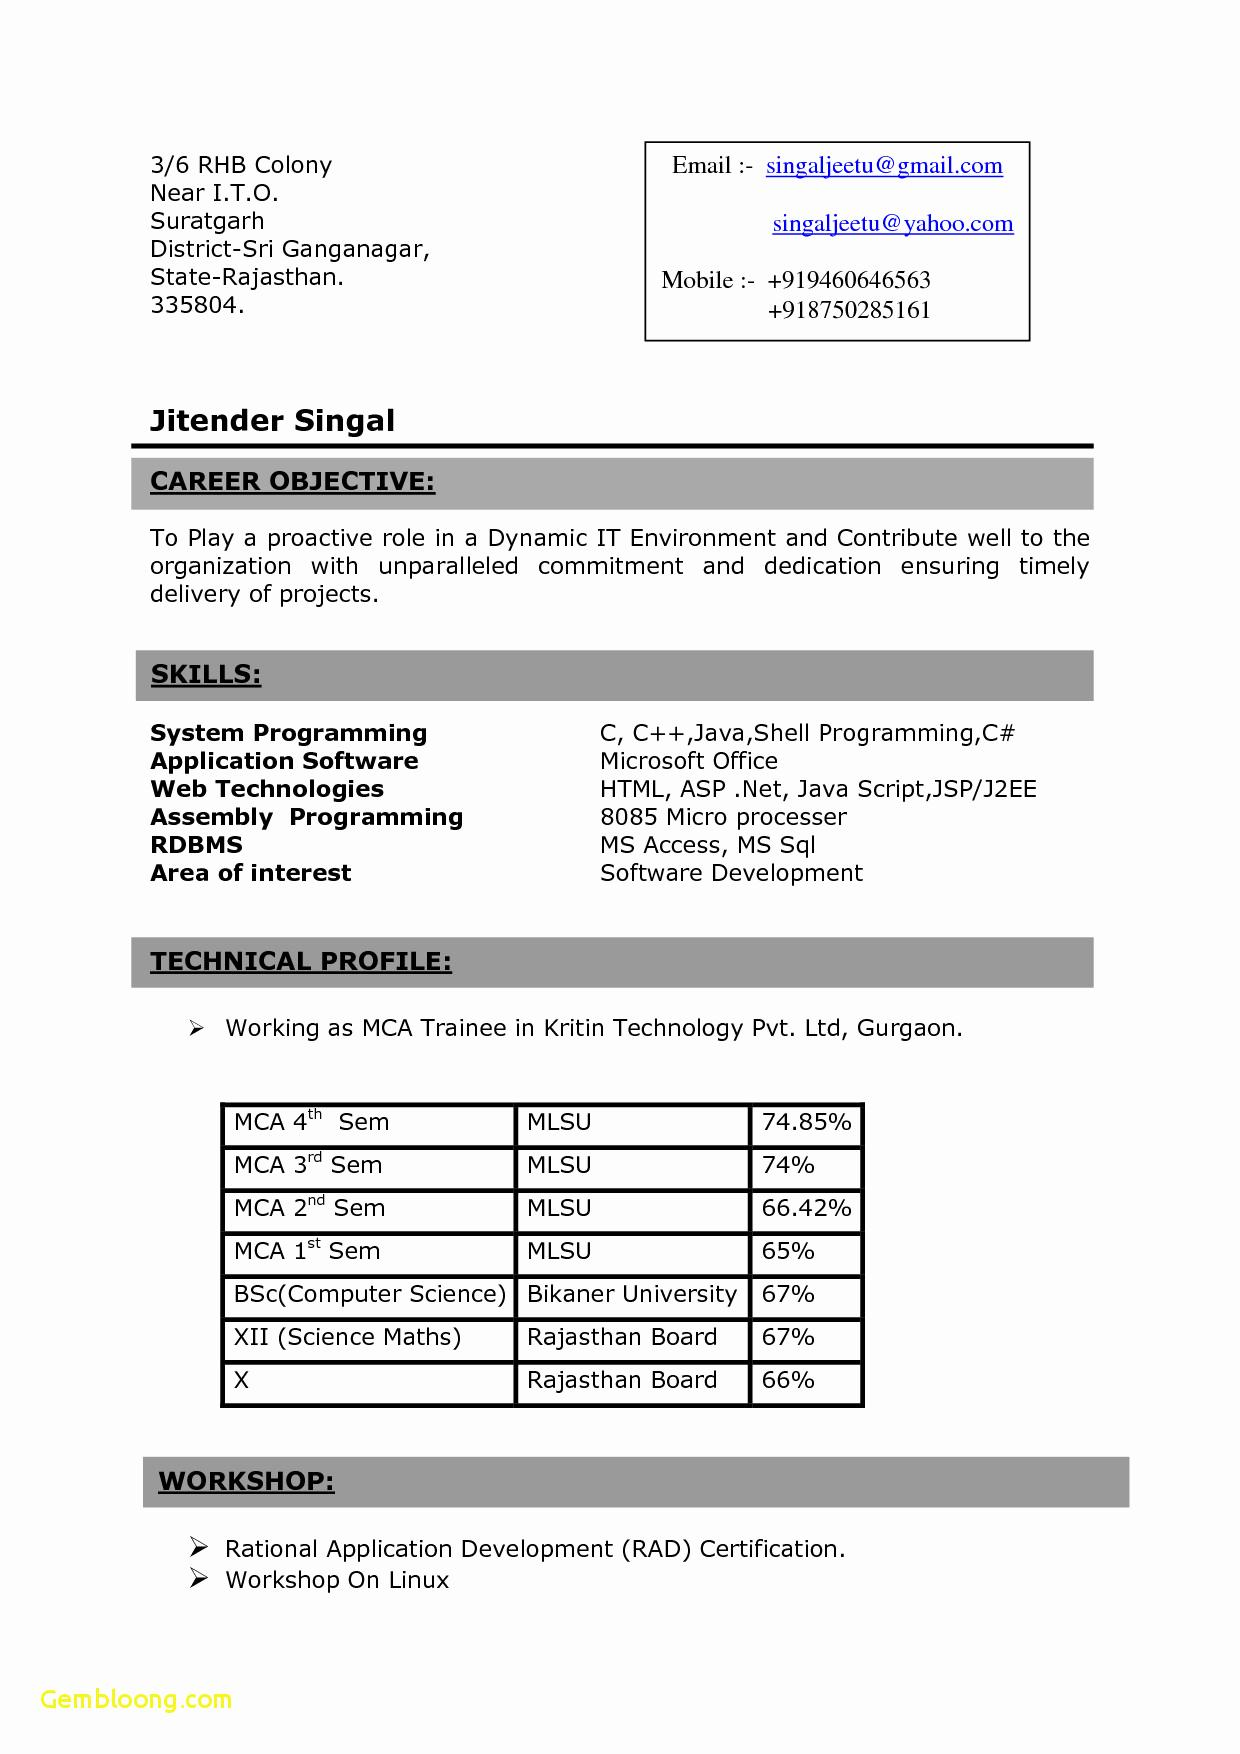 Resume Format For 3Rd Year Engineering Students